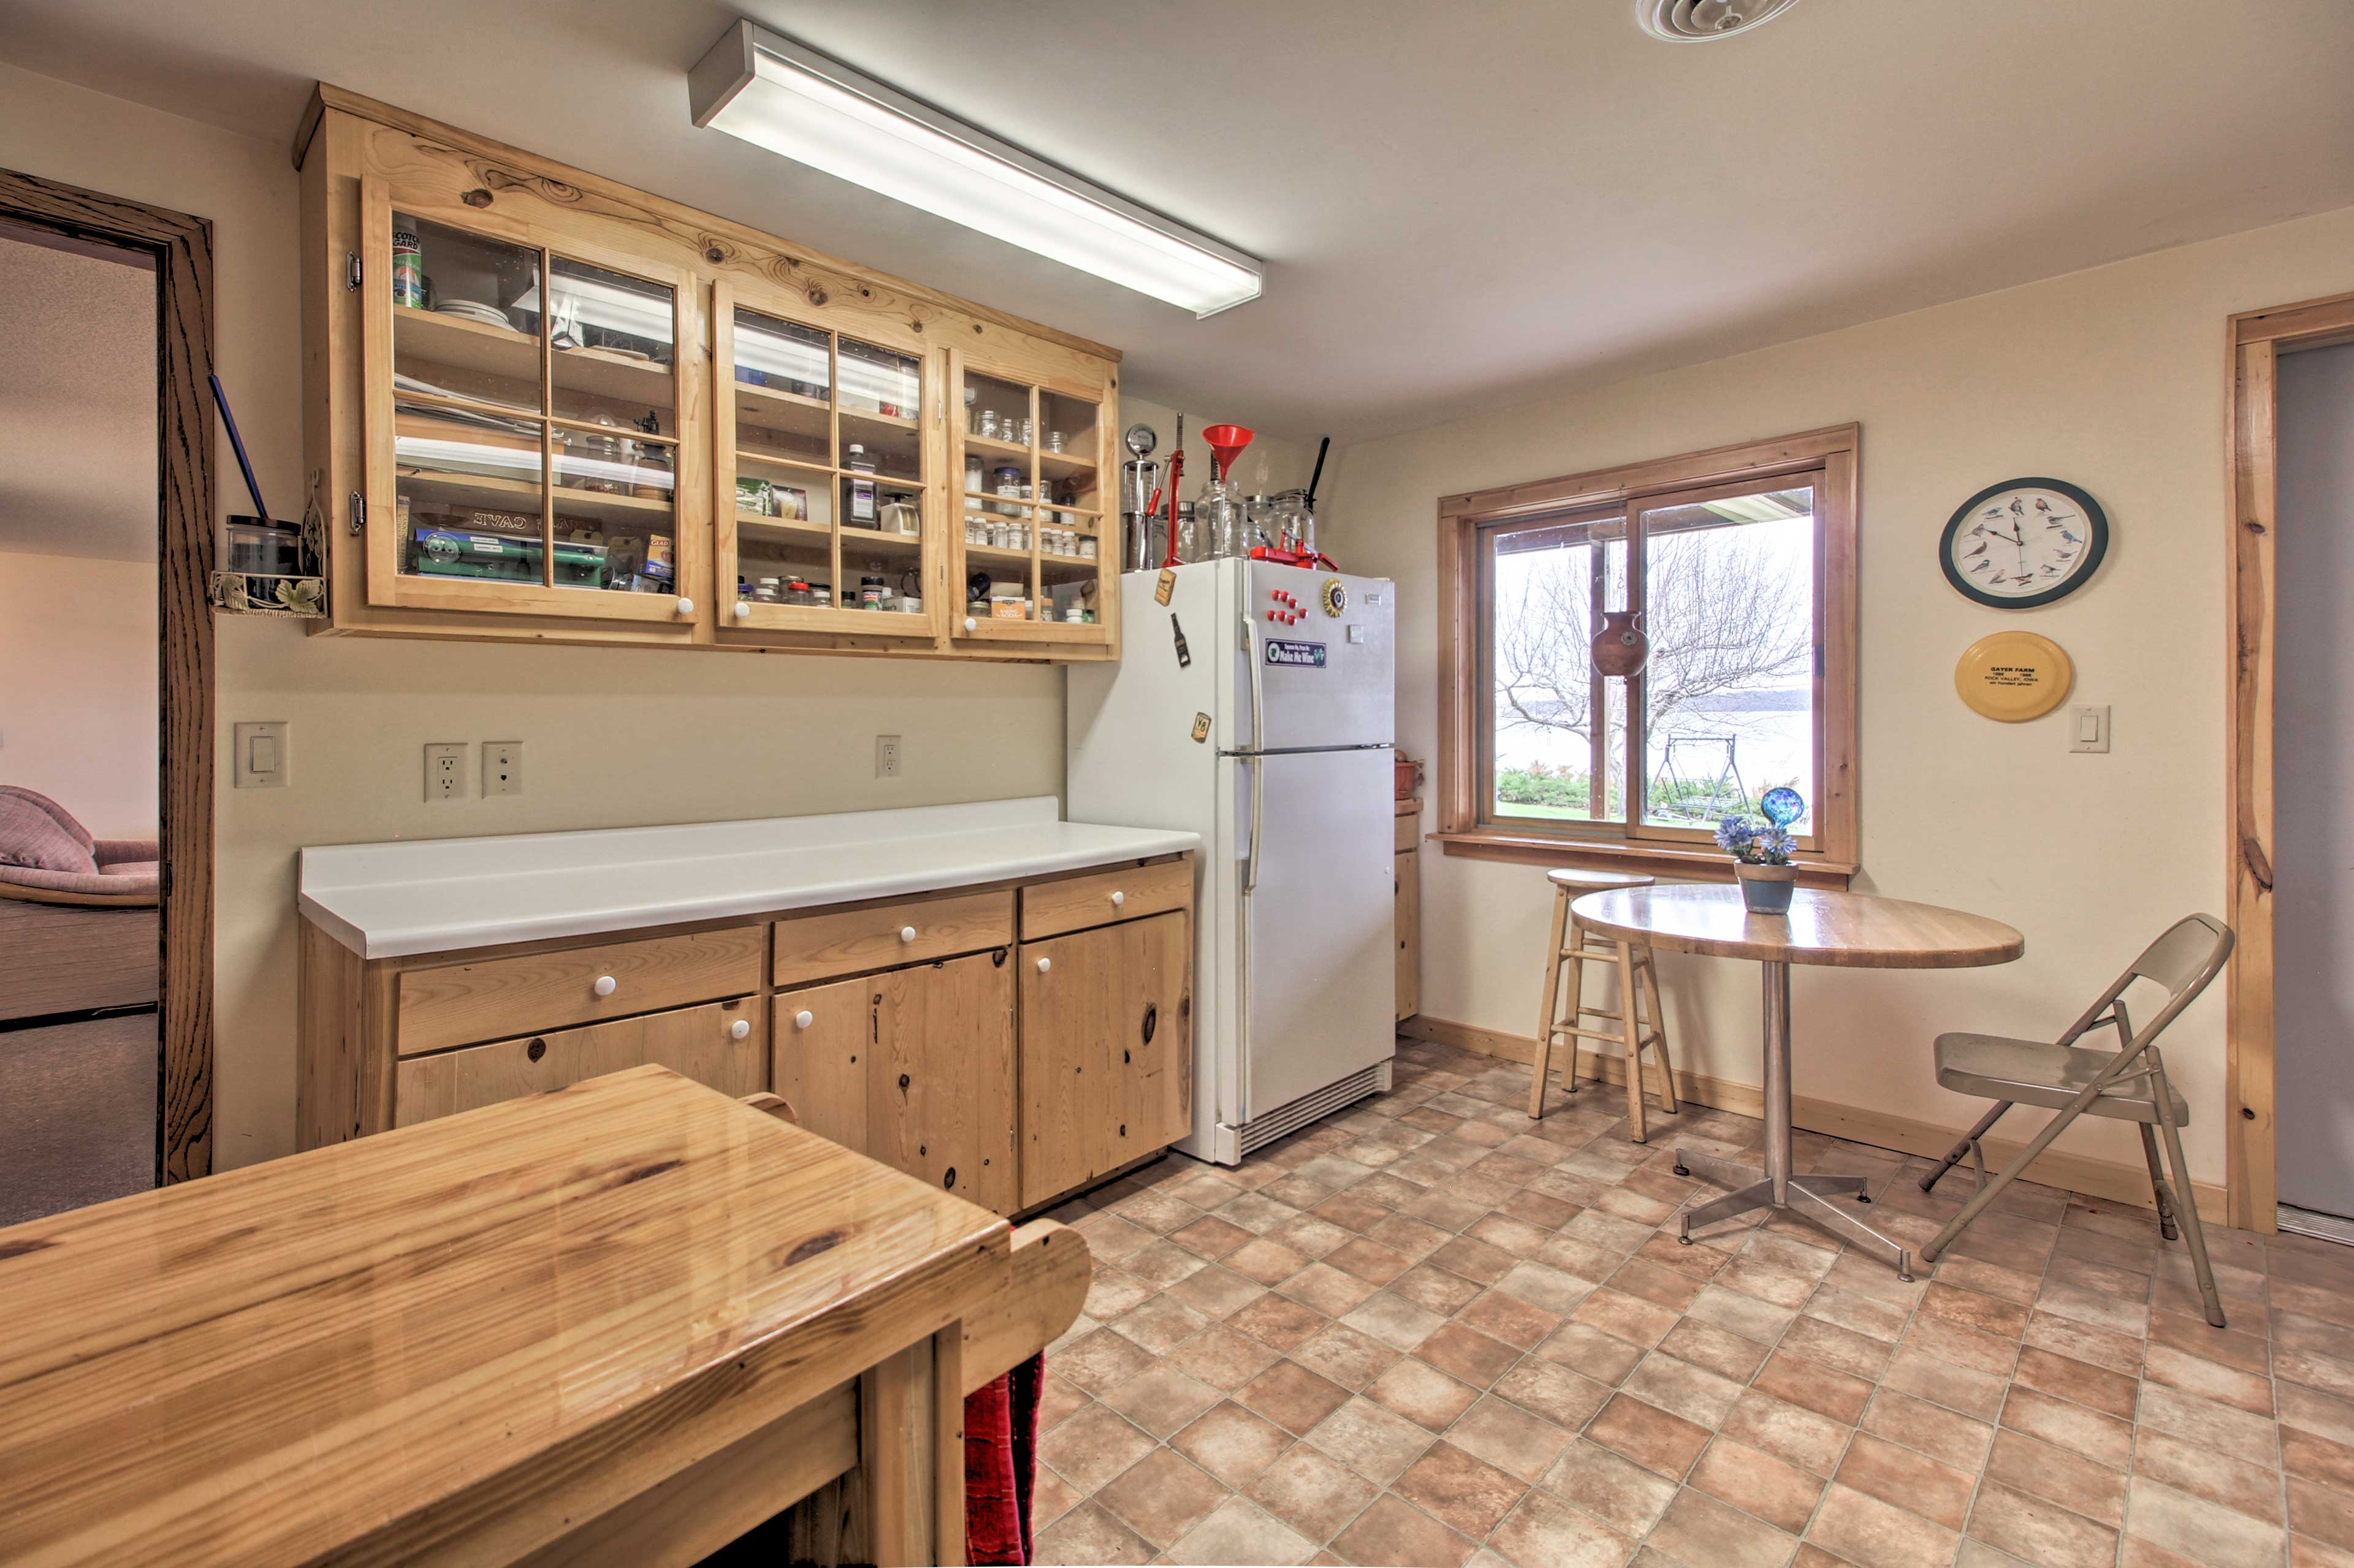 Top off fishing days with the fish-cleaning kitchen located downstairs!